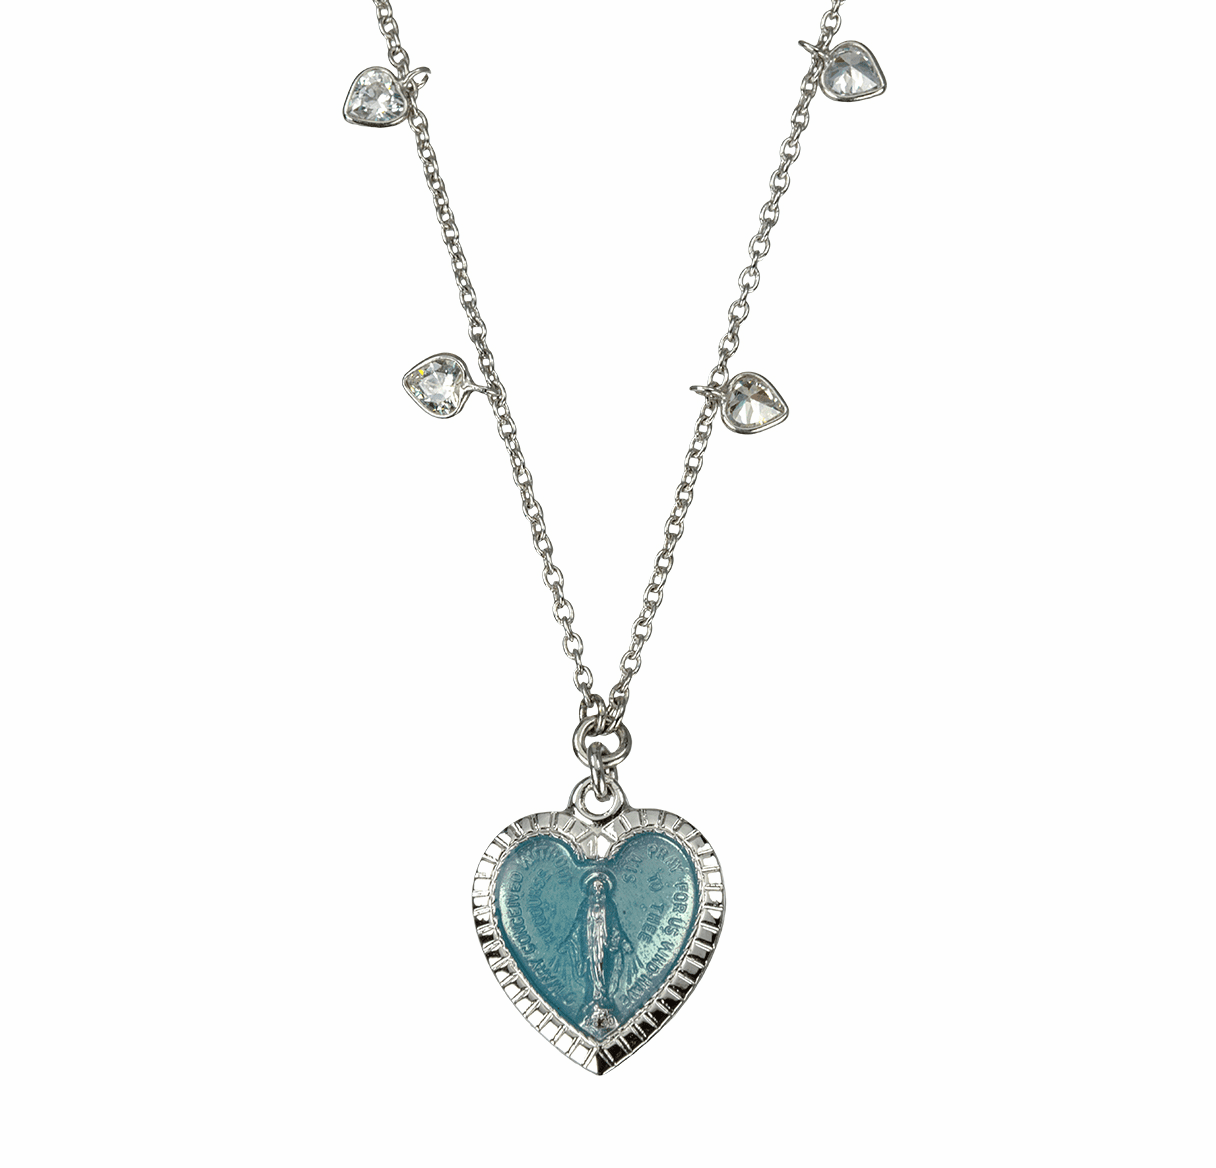 HMH Religious Enameled Heart Shaped Miraculous Medal Sterling Silver Beaded Necklace